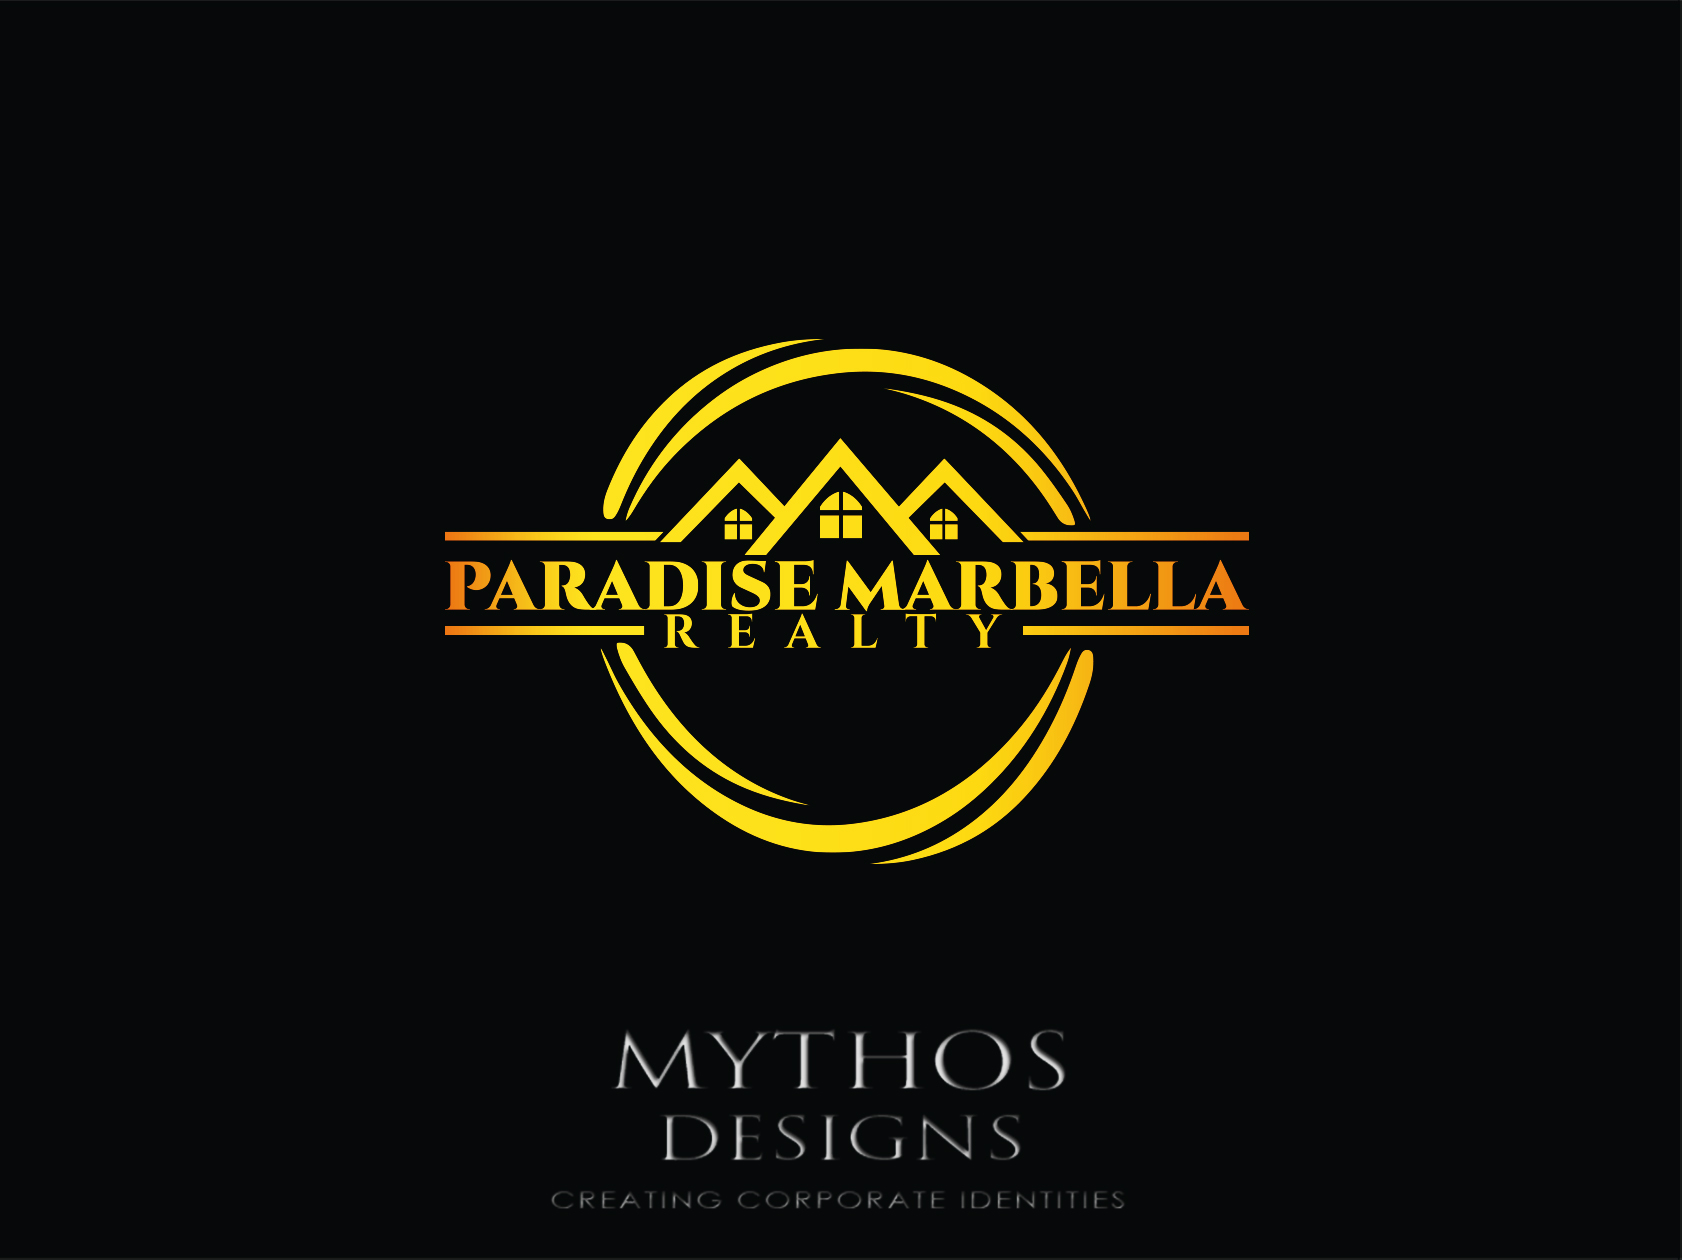 Logo Design by Mythos Designs - Entry No. 88 in the Logo Design Contest Captivating Logo Design for Paradise Marbella Realty.